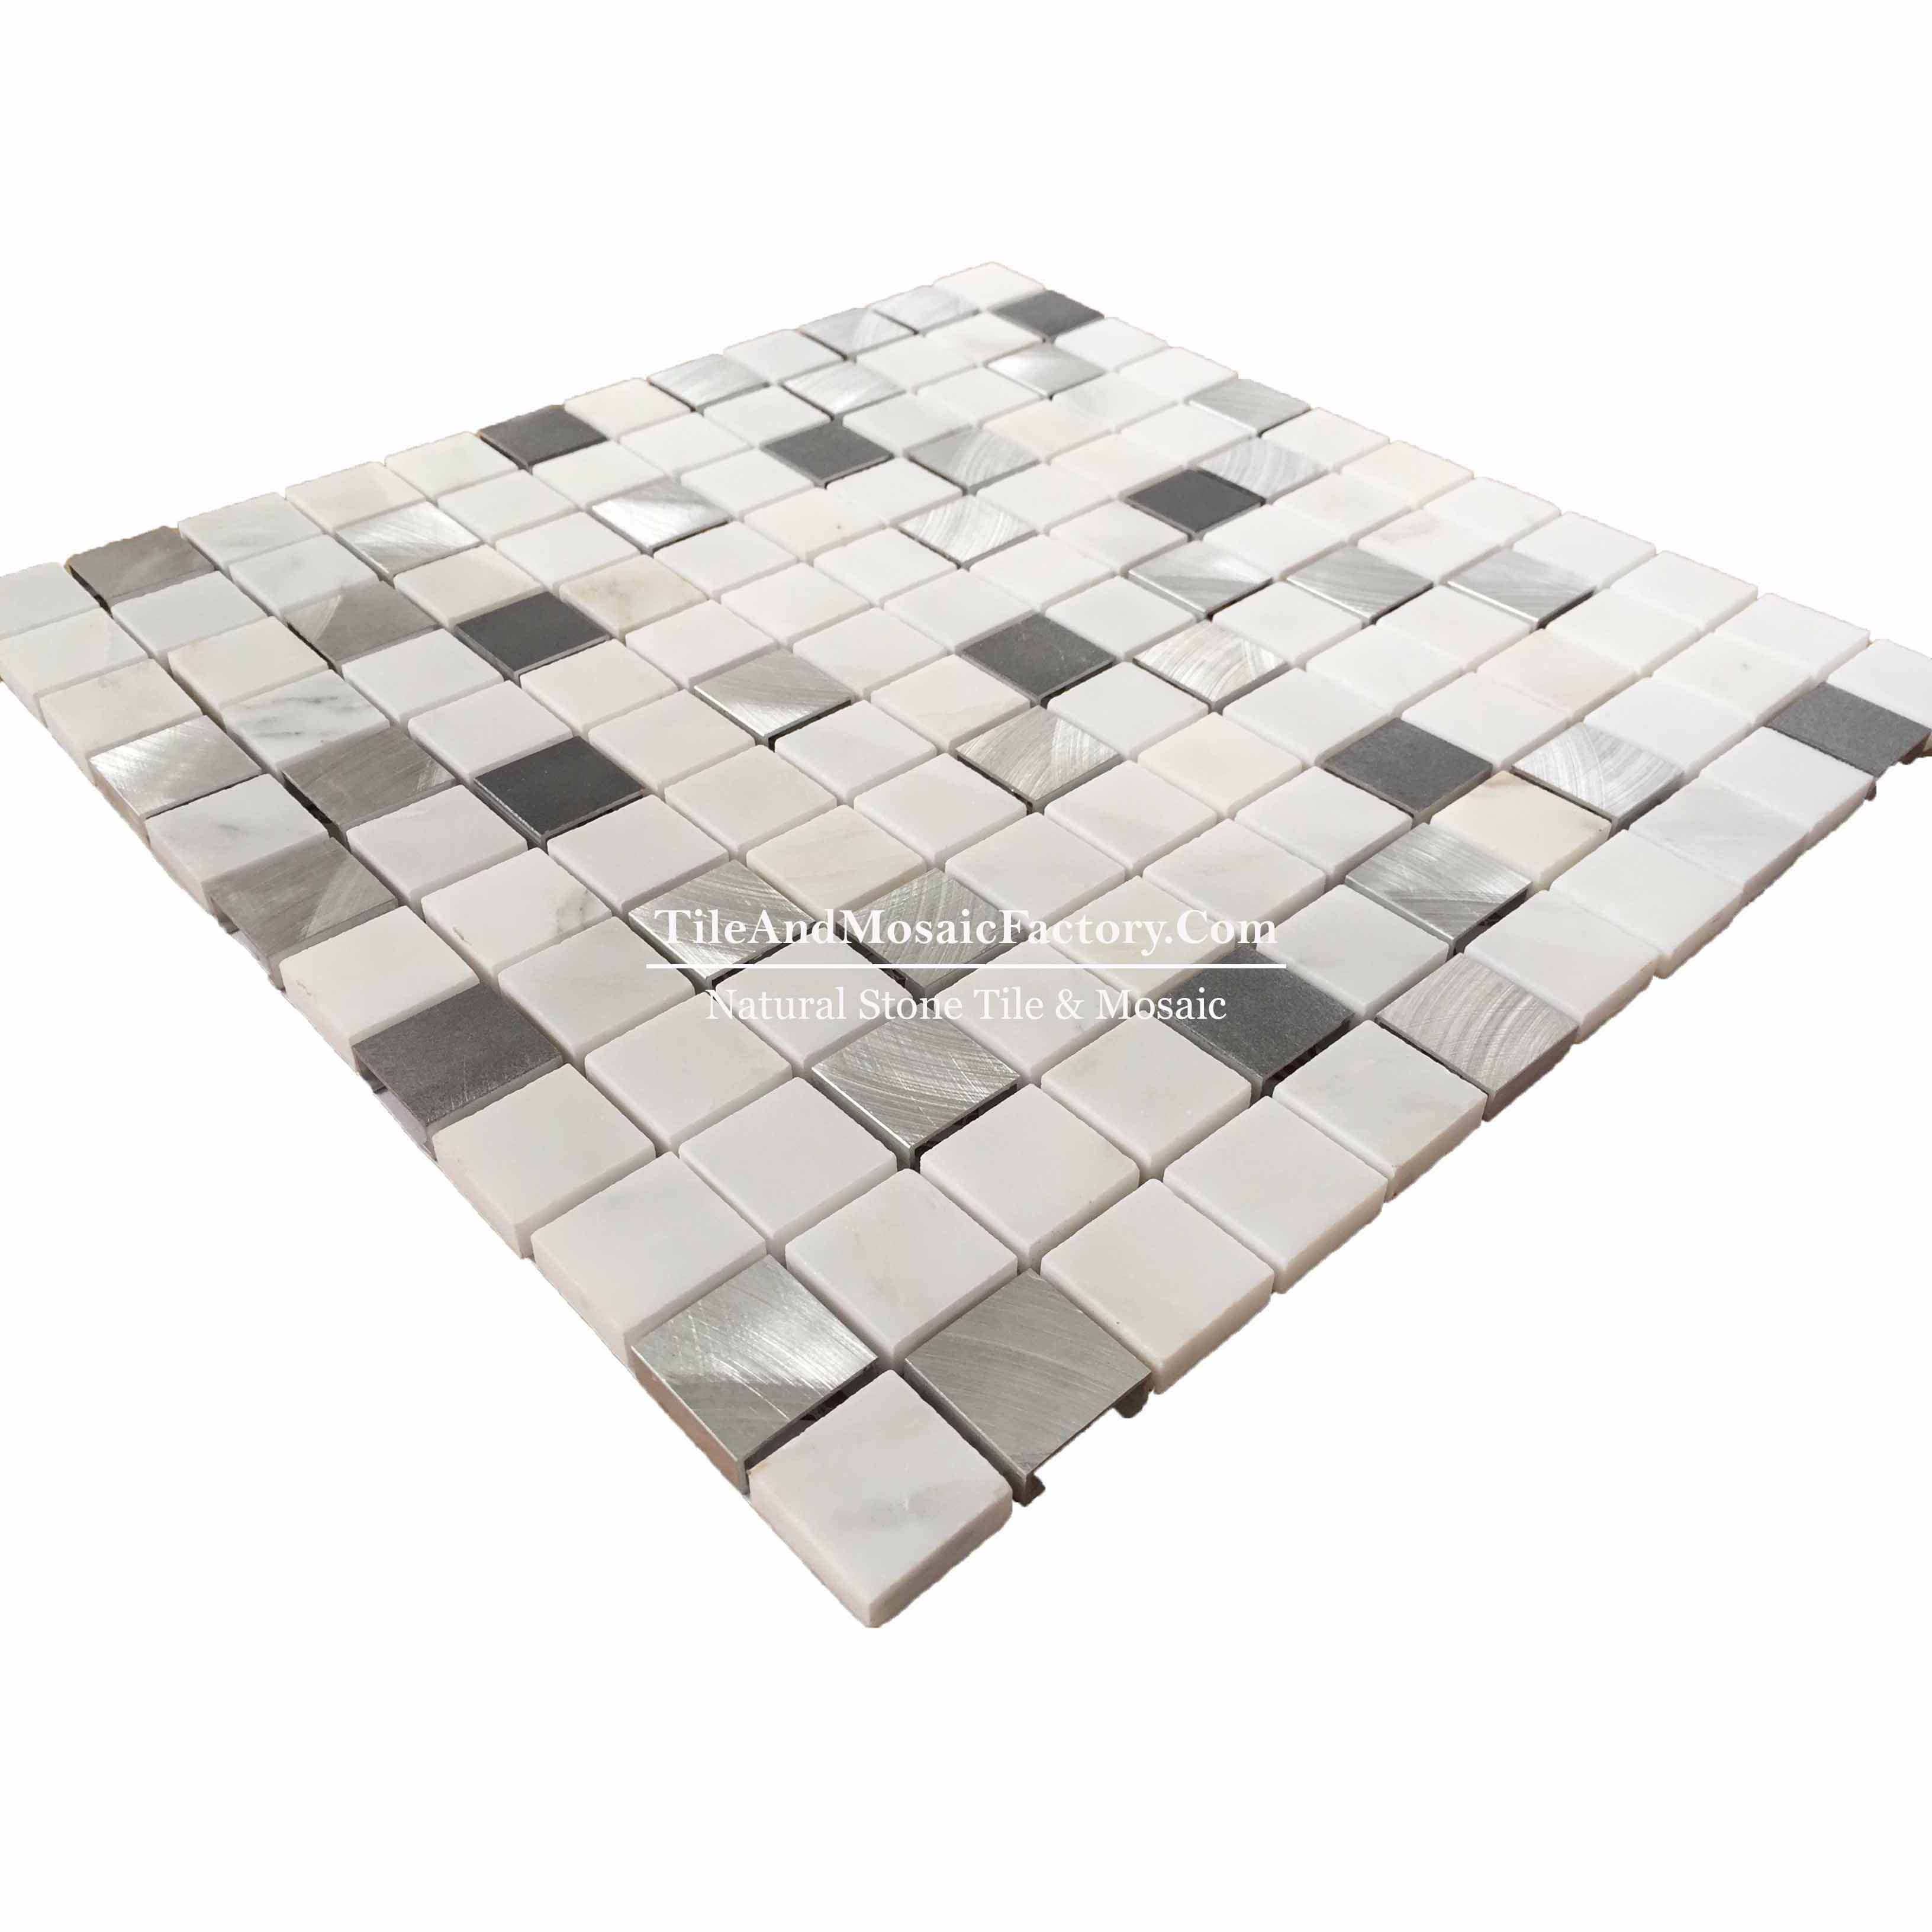 "Asian White & Stainless Steel Square 1x1""  polished White color Marble Mosaic"